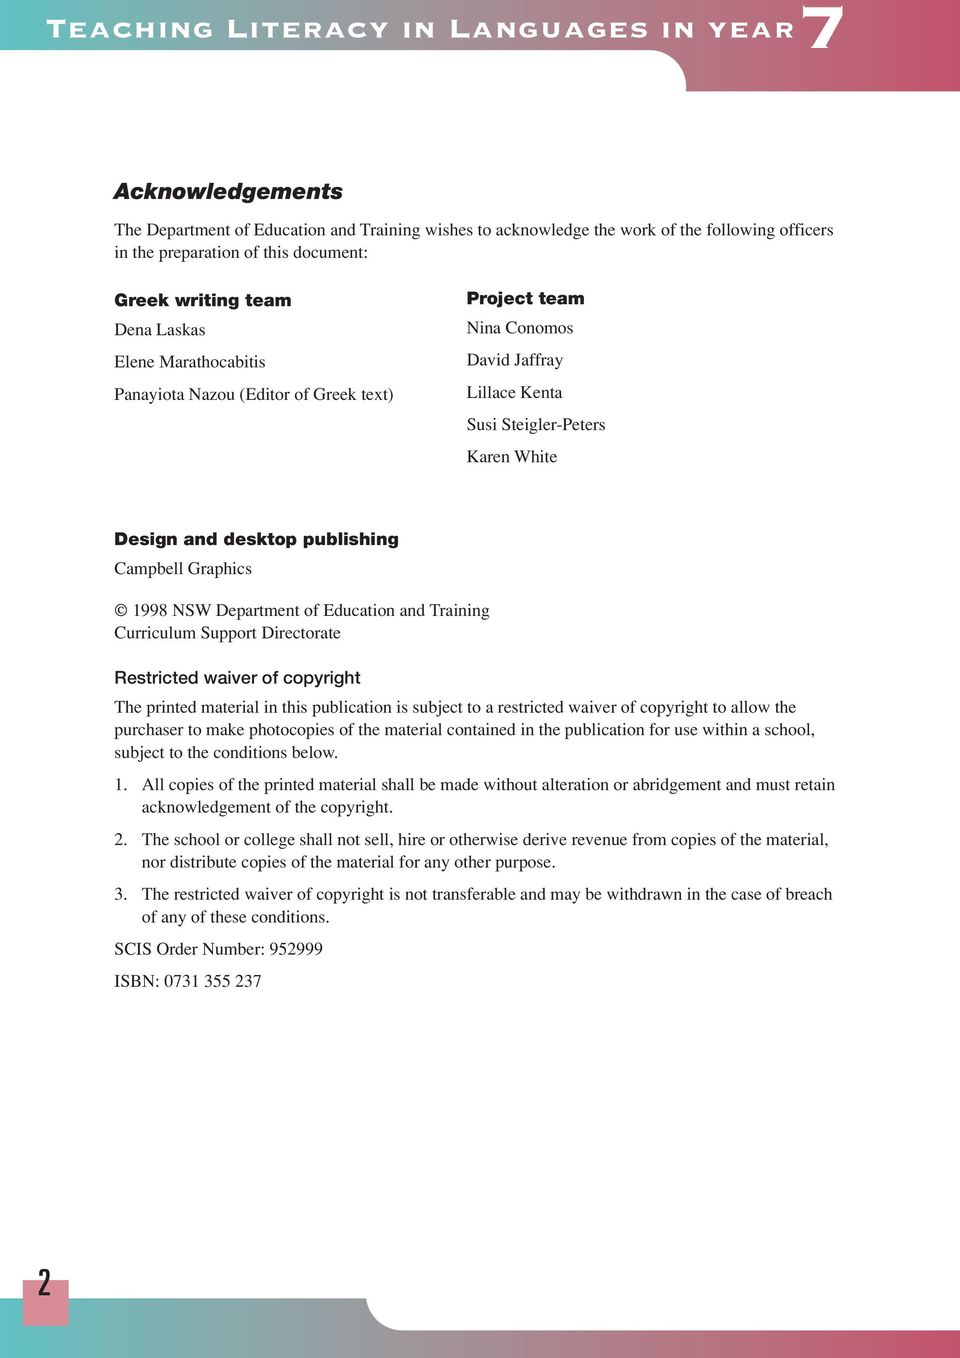 publishing Campbell Graphics 1998 NSW Department of Education and Training Curriculum Support Directorate Restricted waiver of copyright The printed material in this publication is subject to a